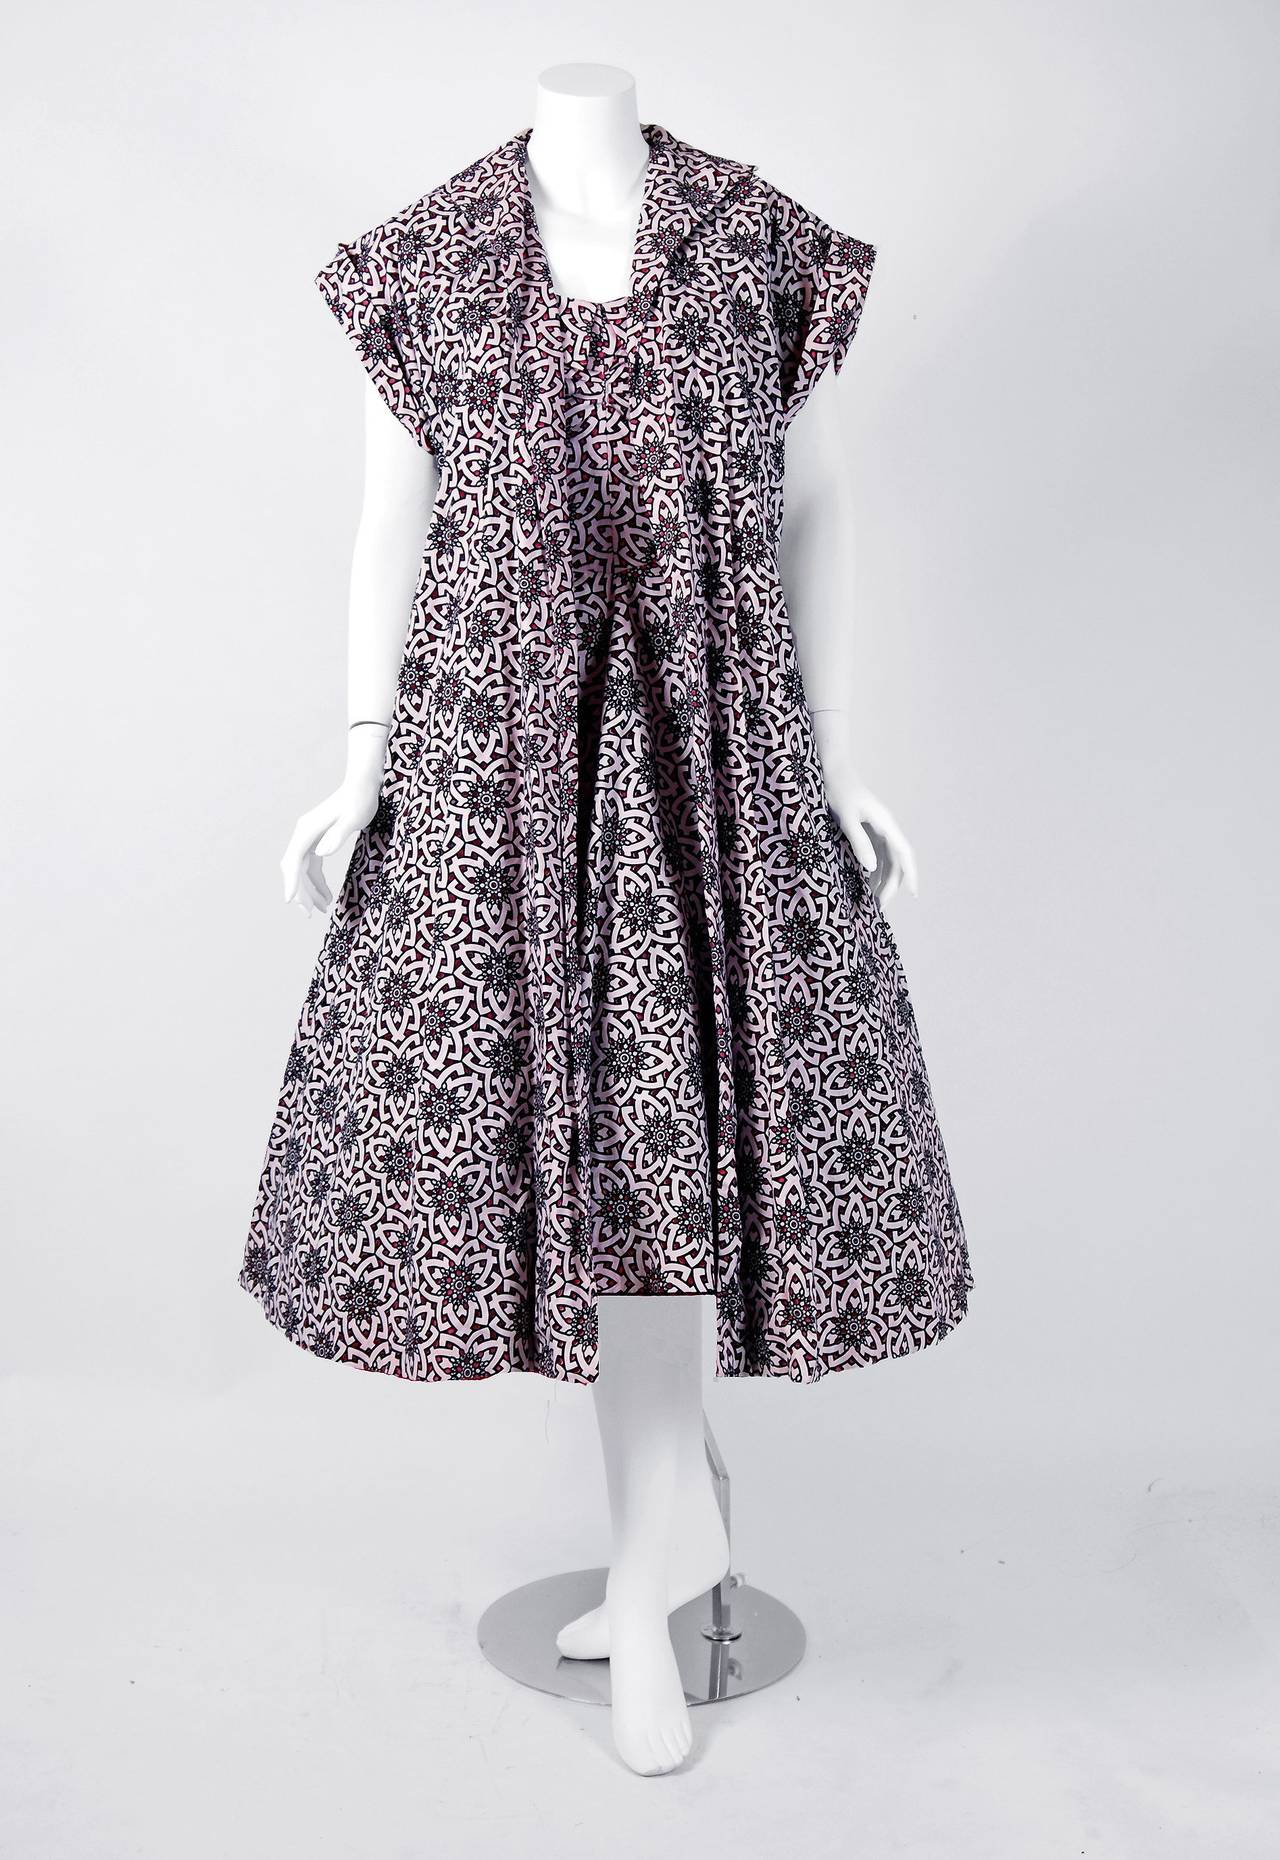 """With its vivid black and white atomic novelty pattern and flawless 'new look' silhouette, this """"Lilli Diamond"""" designer ballerina sundress ensemble has the casual elegance the 1950's were known for. The artisanship alone is unbelievable. A cut-out"""